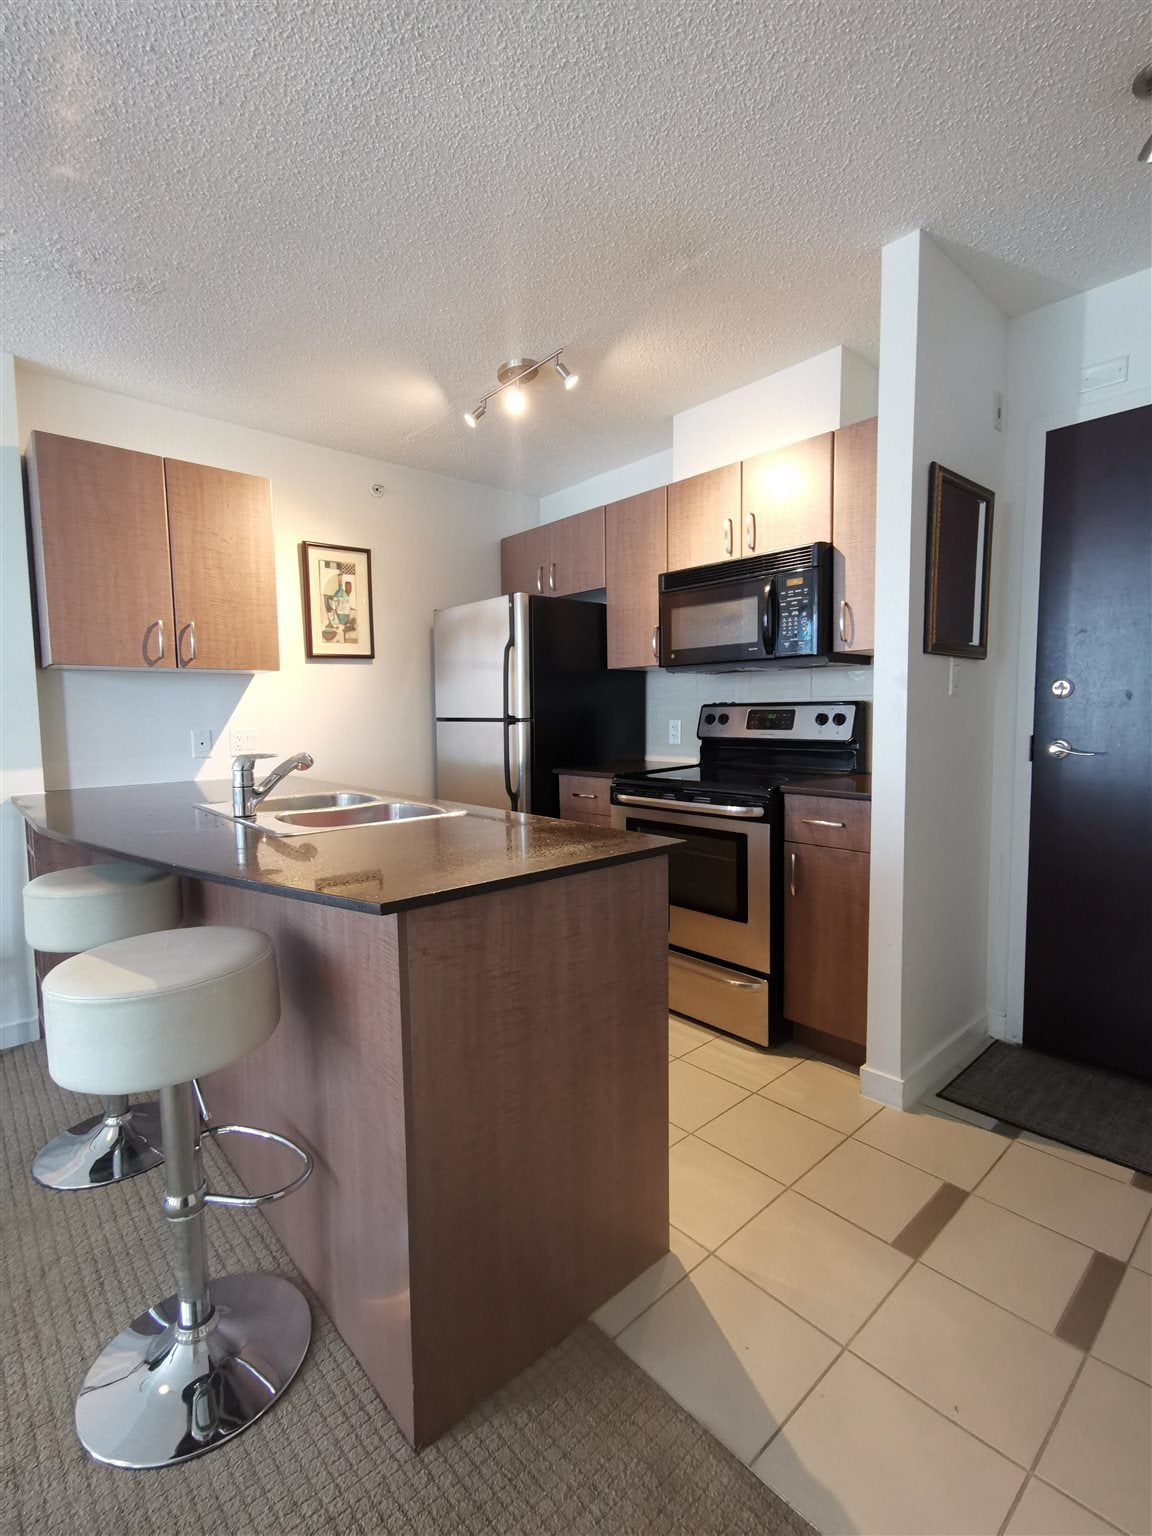 2006 610 GRANVILLE STREET - Downtown VW Apartment/Condo for sale, 1 Bedroom (R2601409) - #1